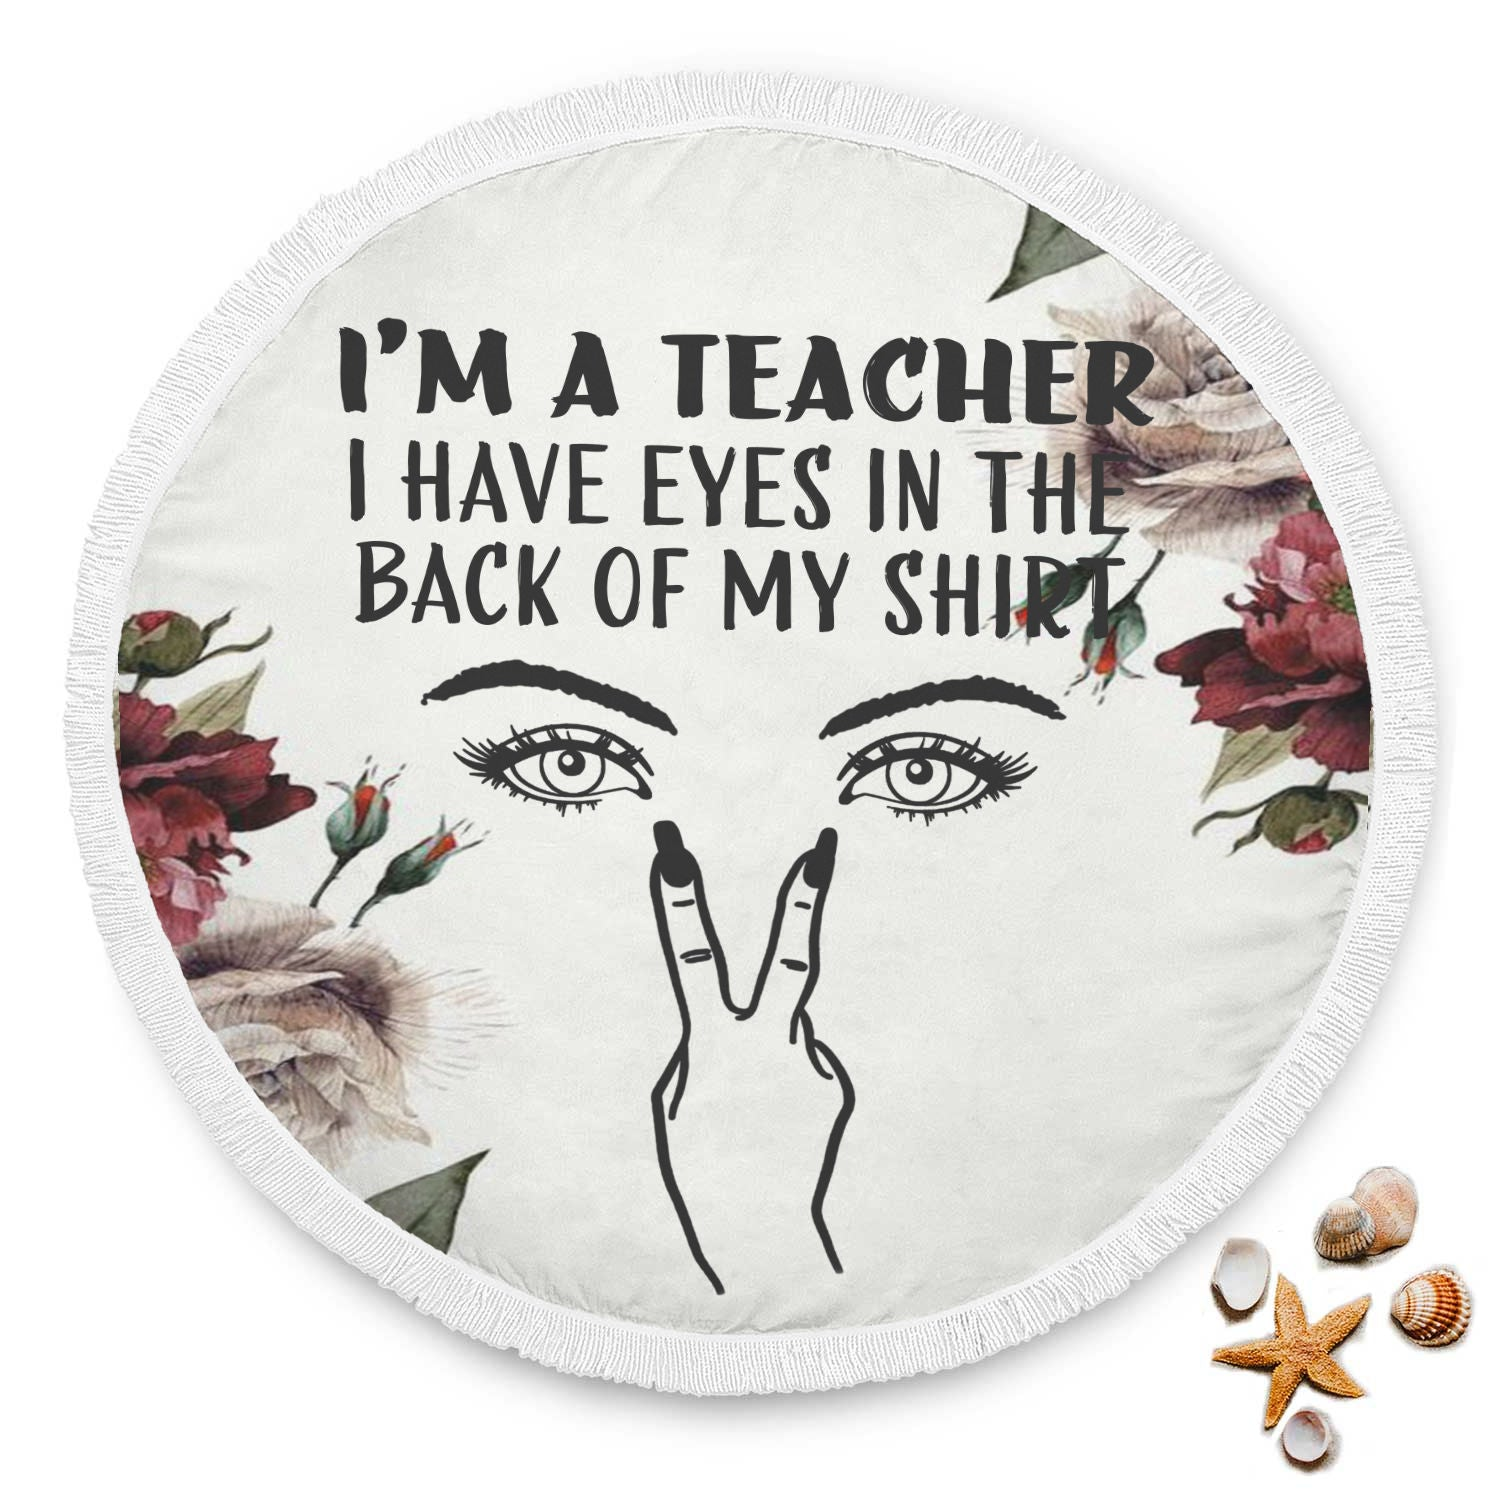 VIRA funny beach blanket for awesome teachers